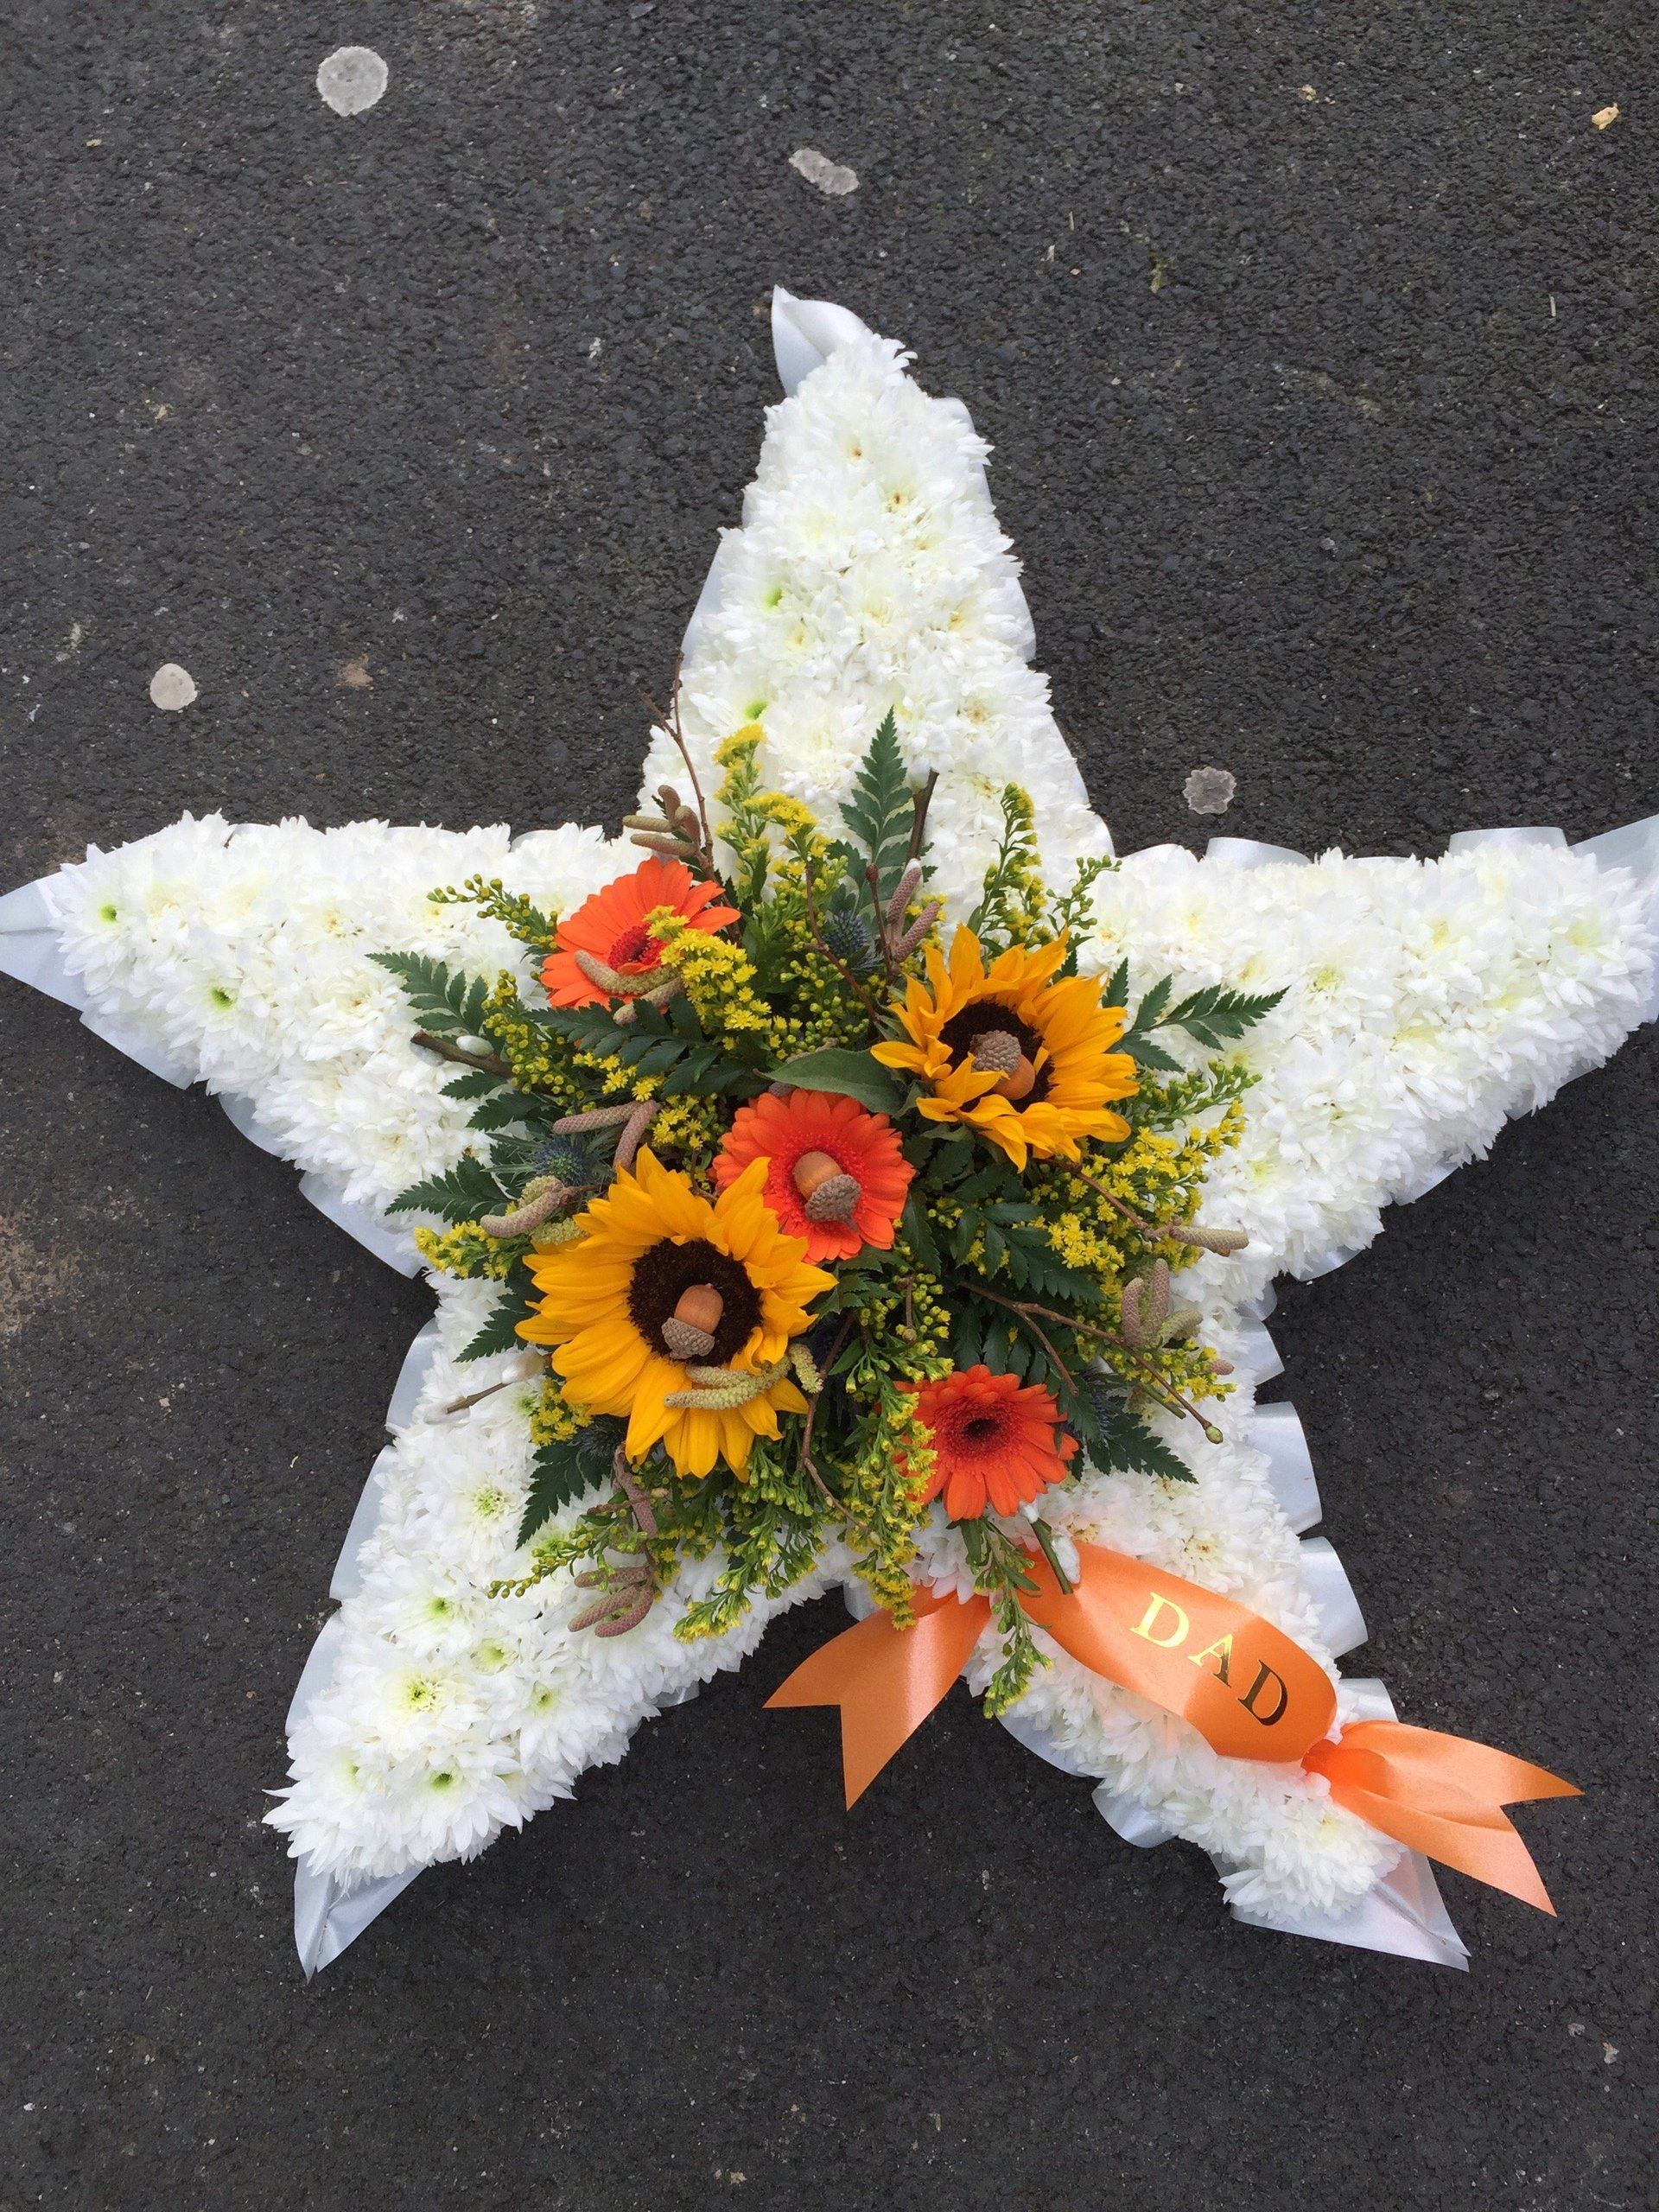 Image Result For Star Shaped Funeral Wreath Floristry Funeral Work